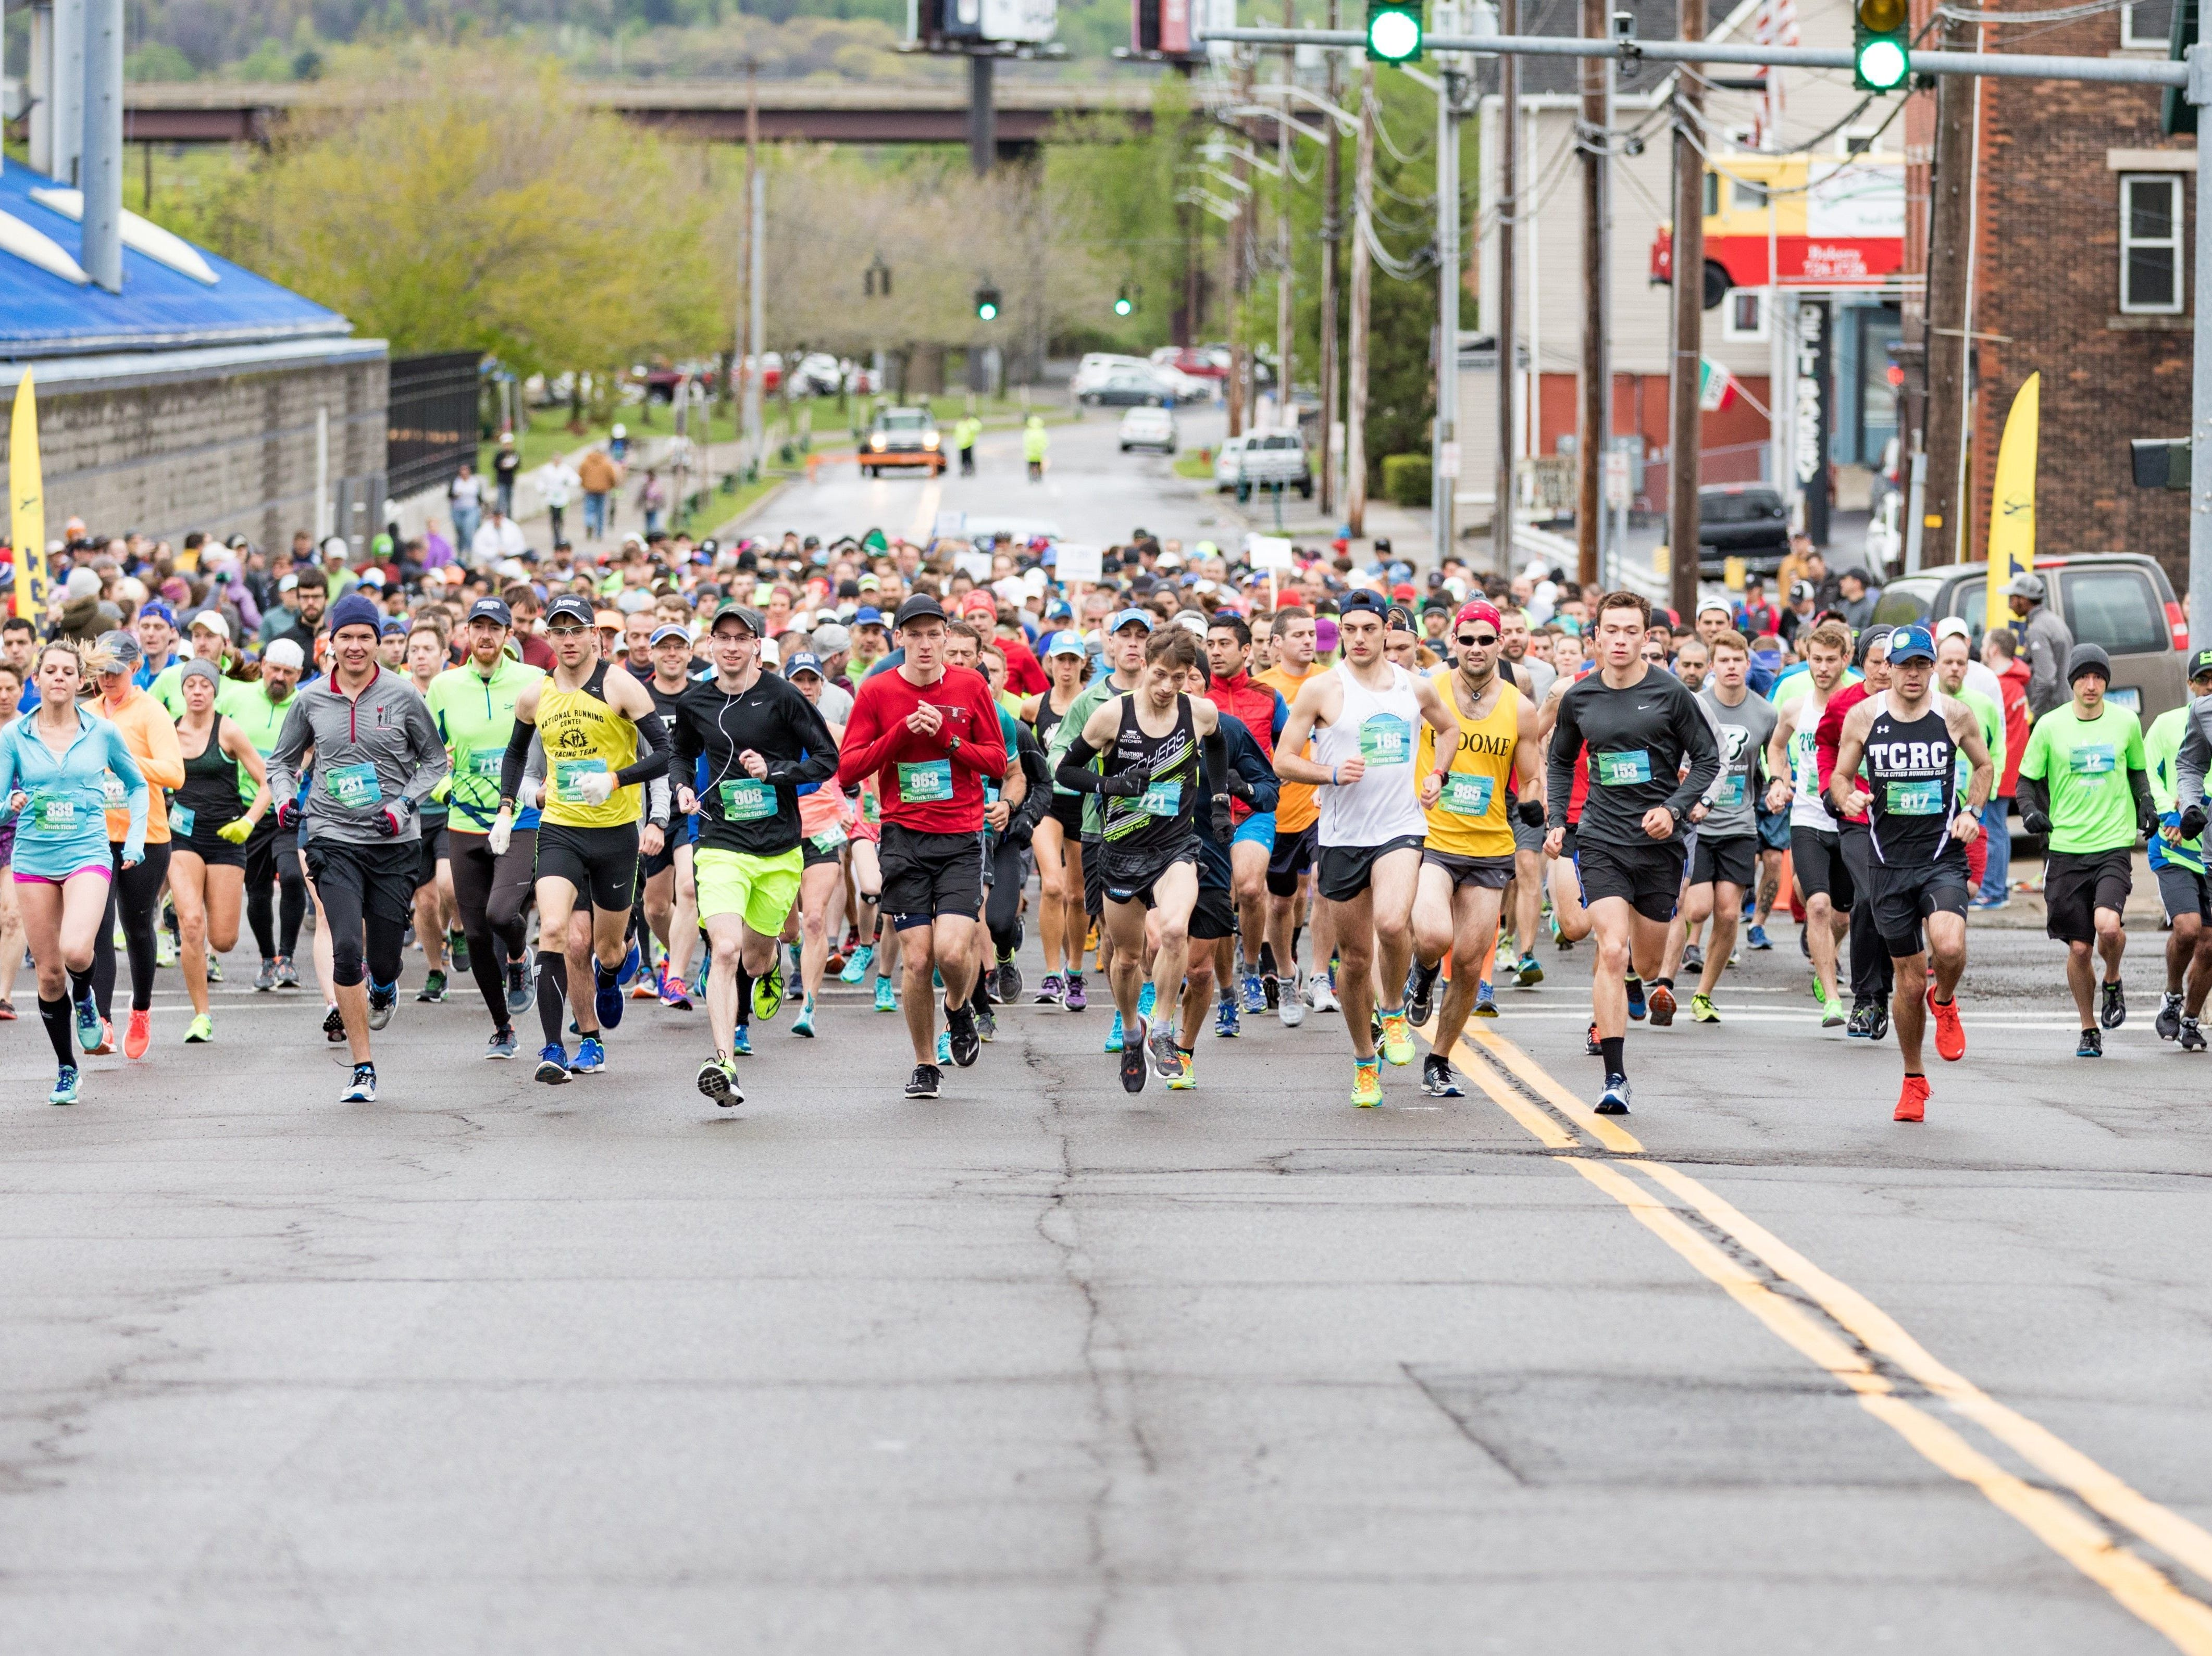 2017: Runners get off the starting line quick during the Binghamton Bridge Run on Sunday, May 7.